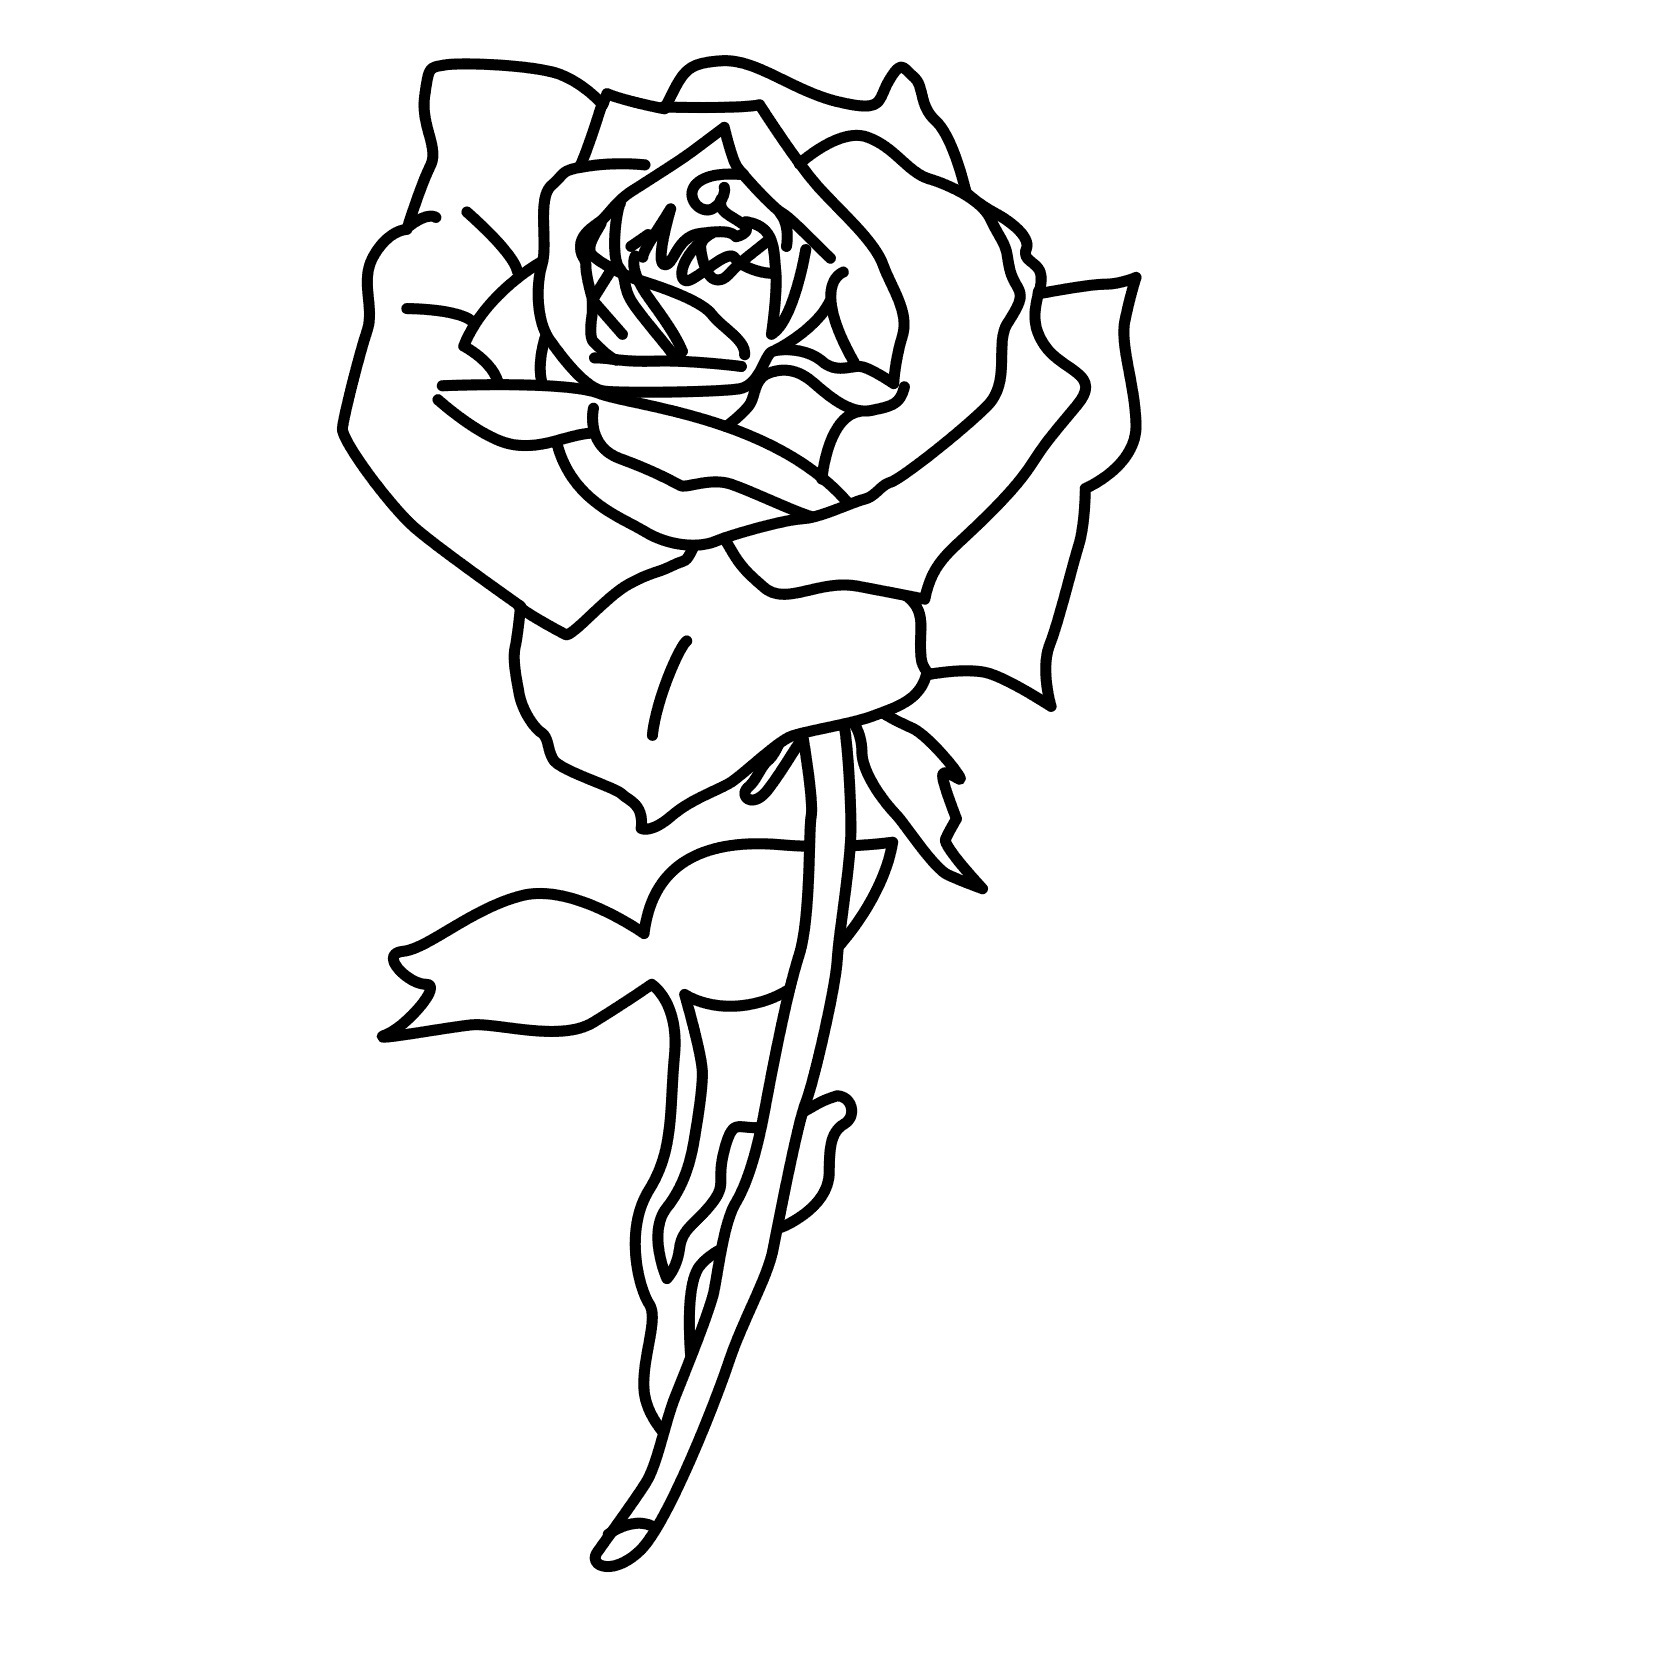 rose color sheets rose coloring pages coloring pages to download and print color sheets rose